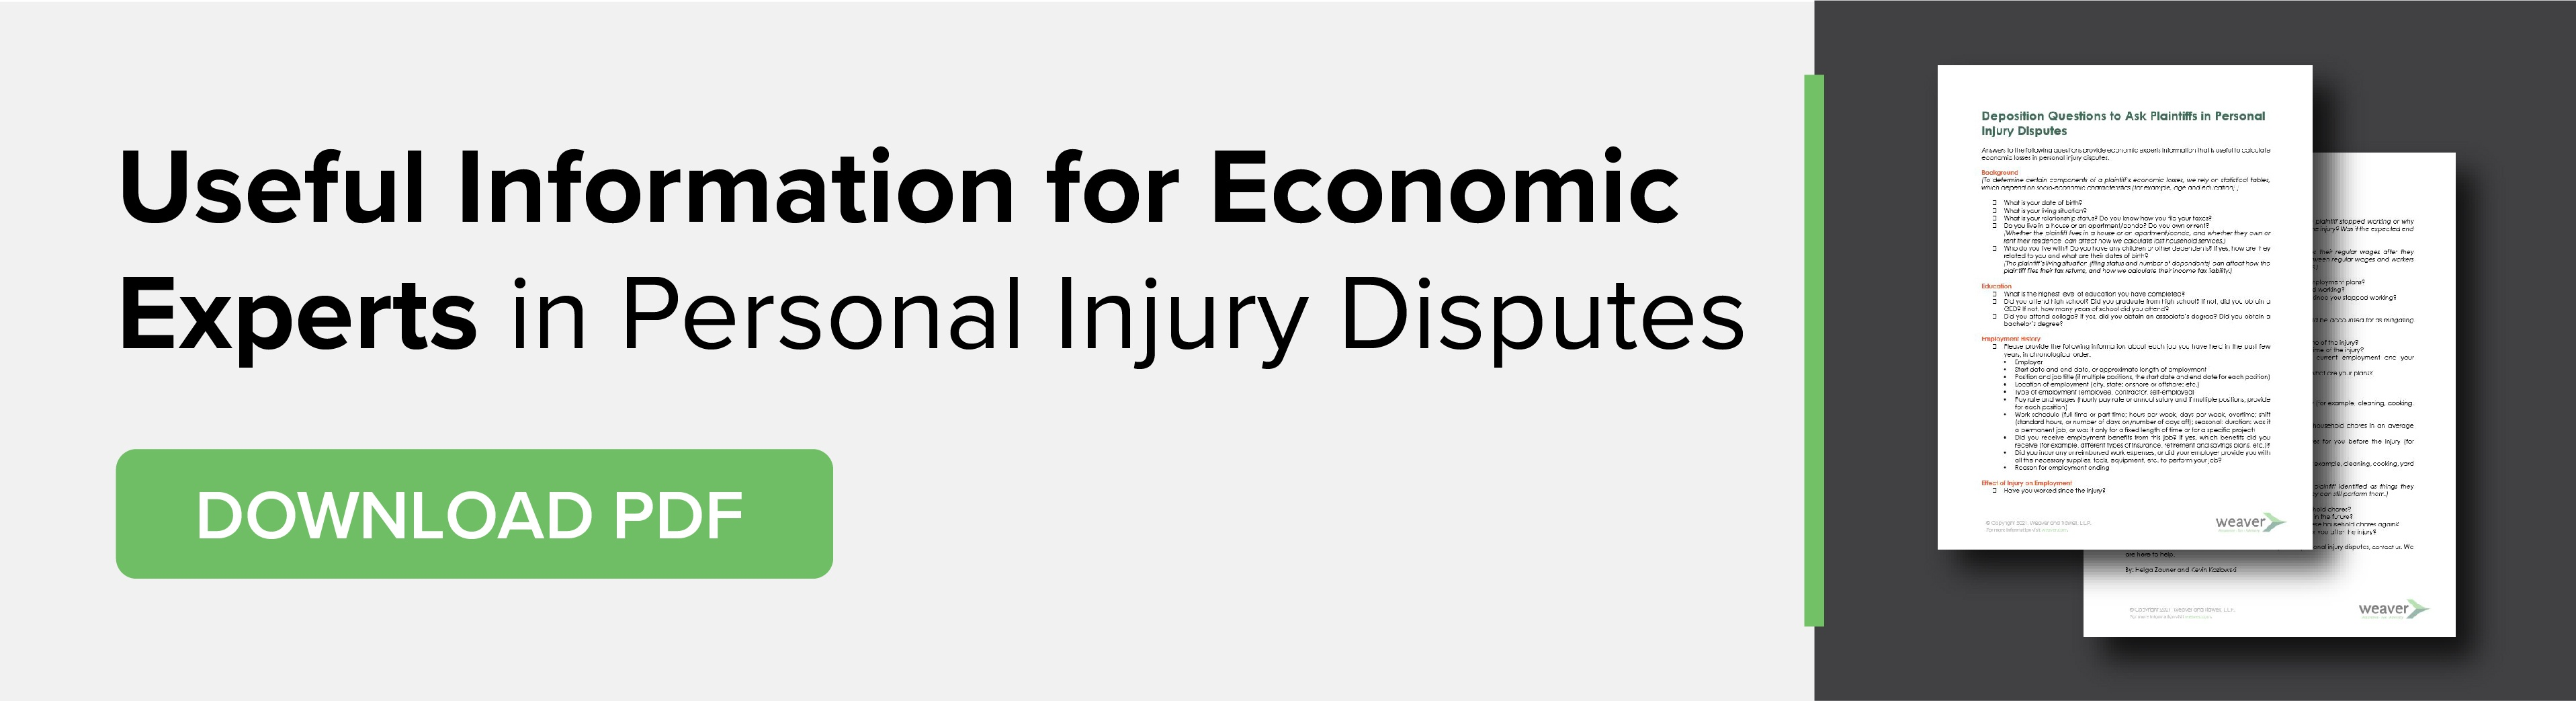 Useful Information for Economic Experts in Personal Injury Disputes Download PDF